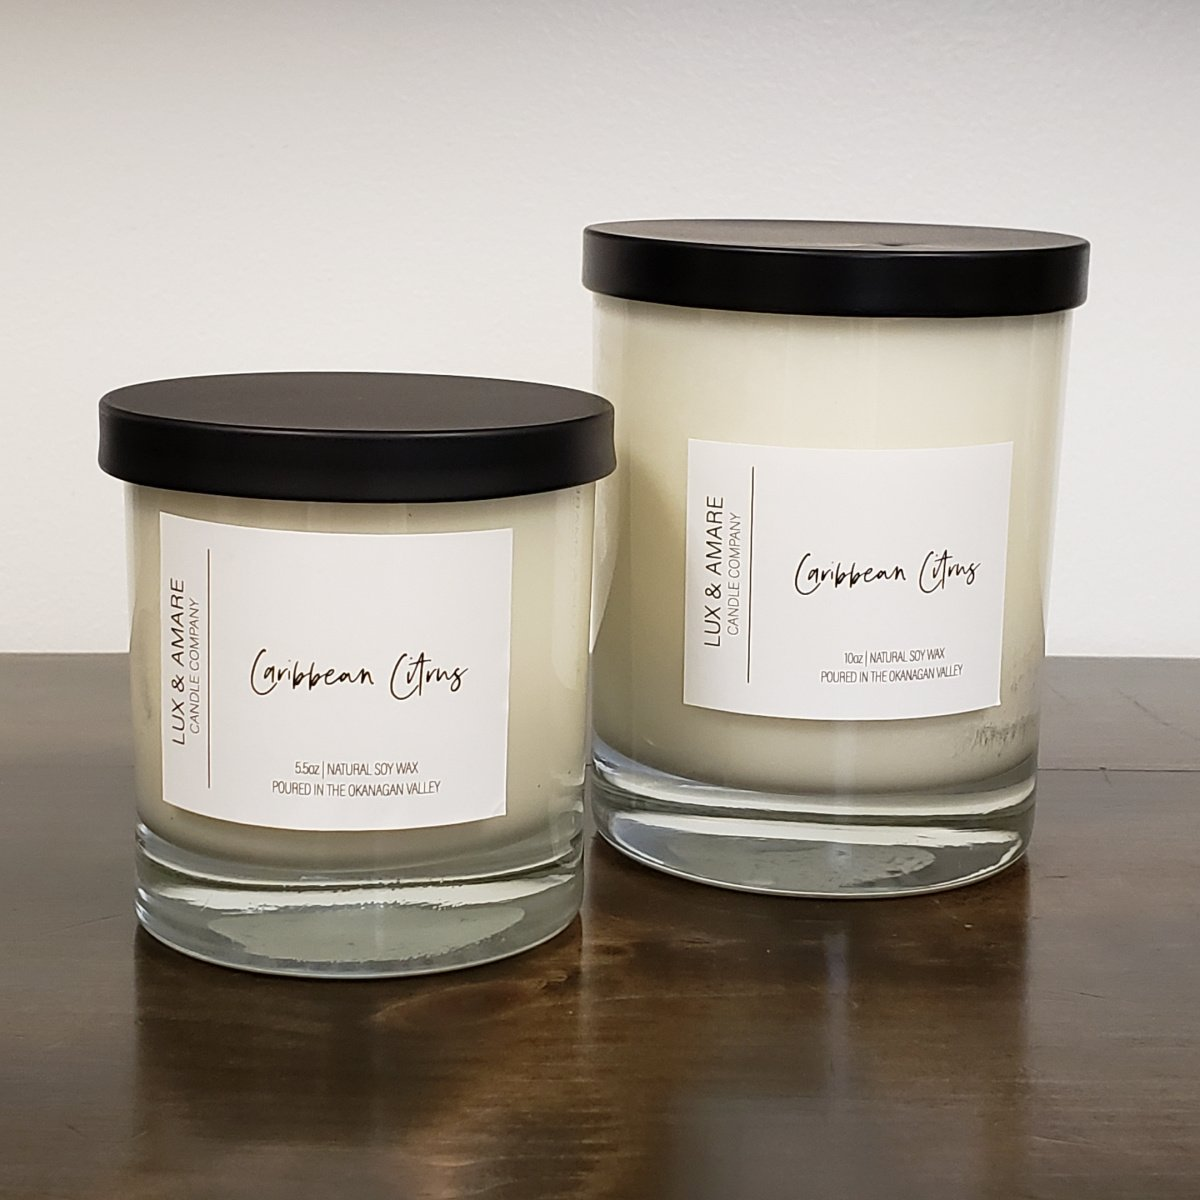 Caribbean Citrus Lux & Amare Candle Company